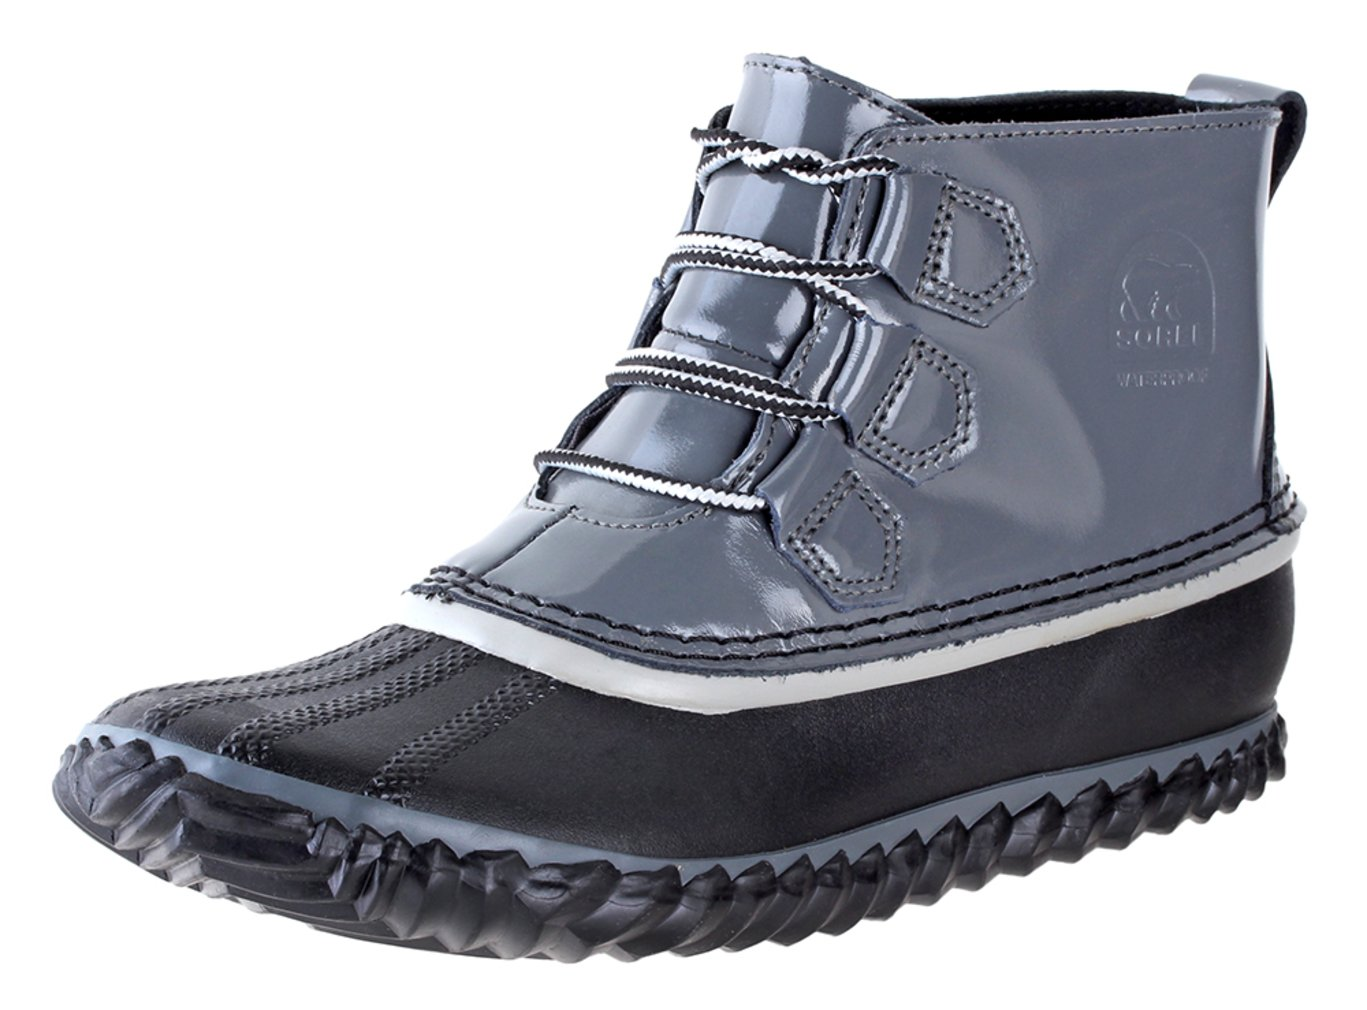 SOREL Womens Out N About Rain Boot, Graphite, 9 B(M) US